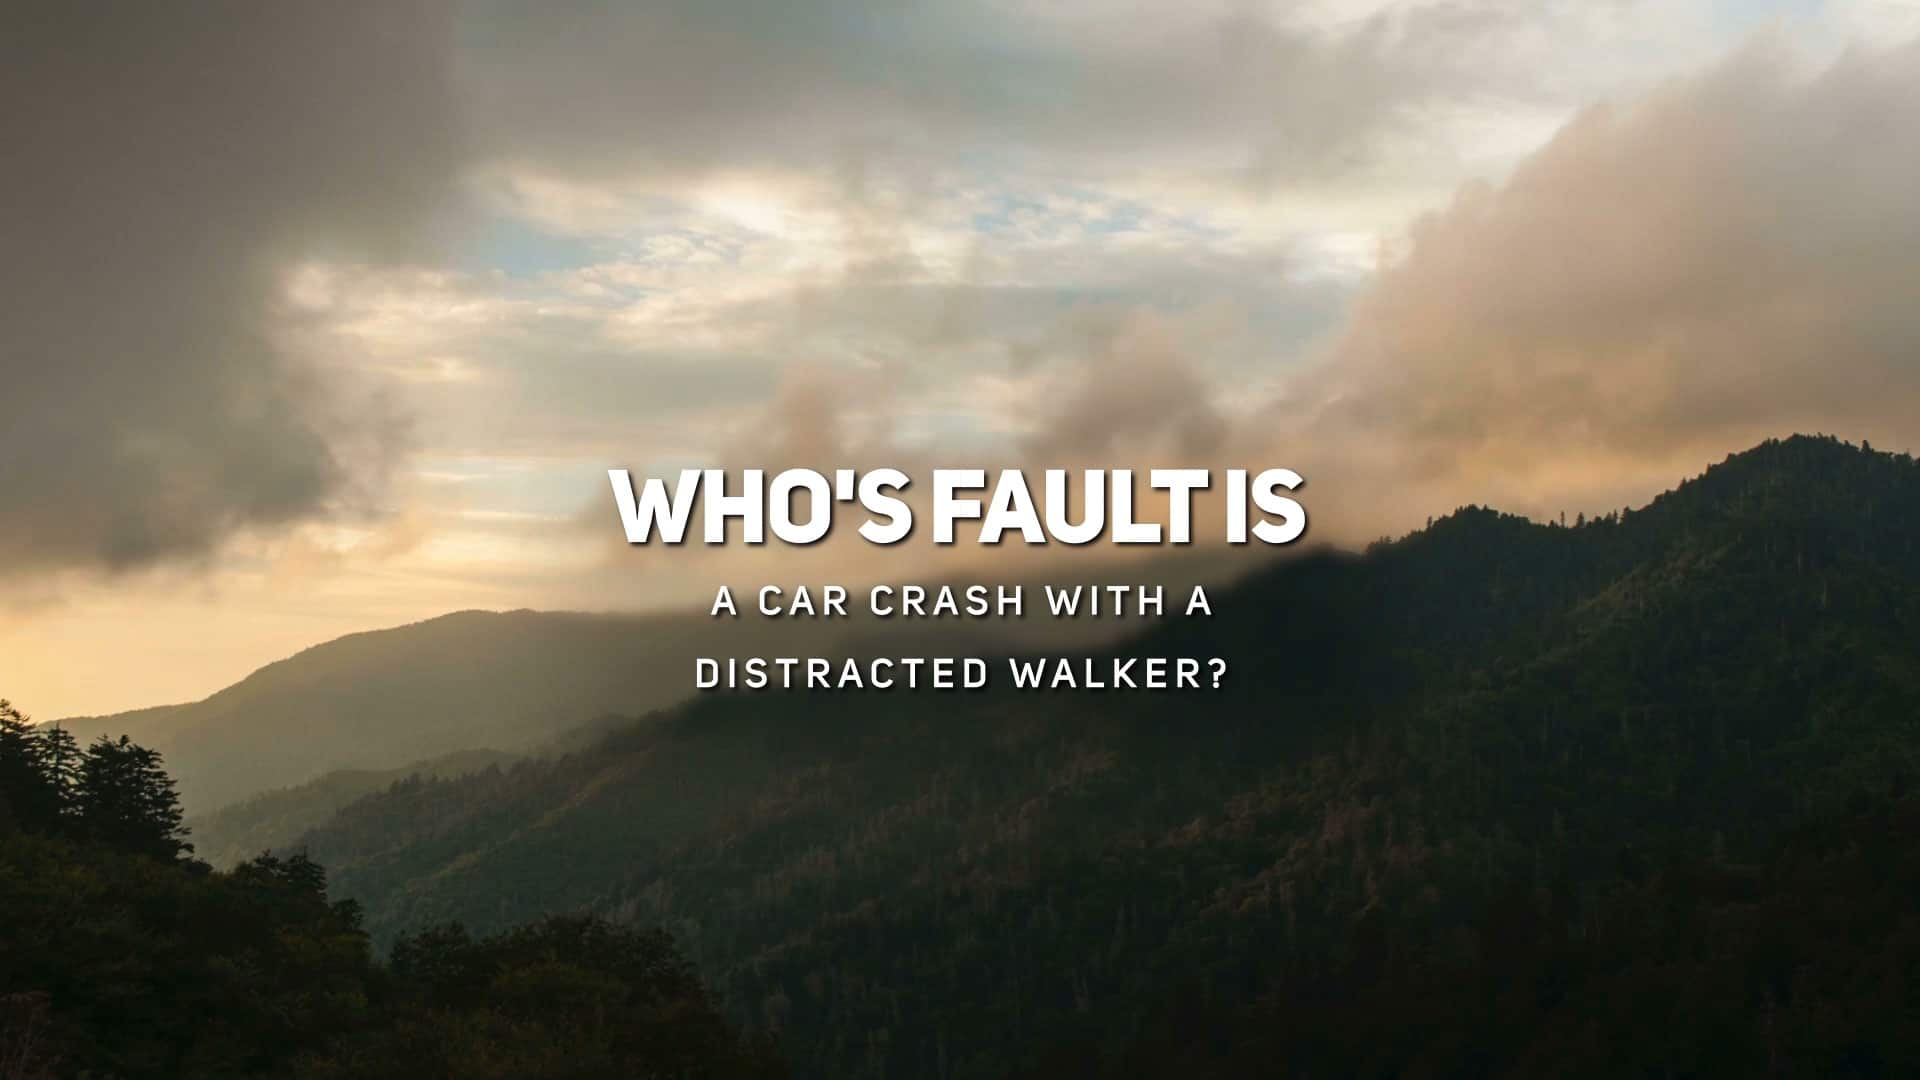 Who's Fault is a Car Crash with a Distracted Walker